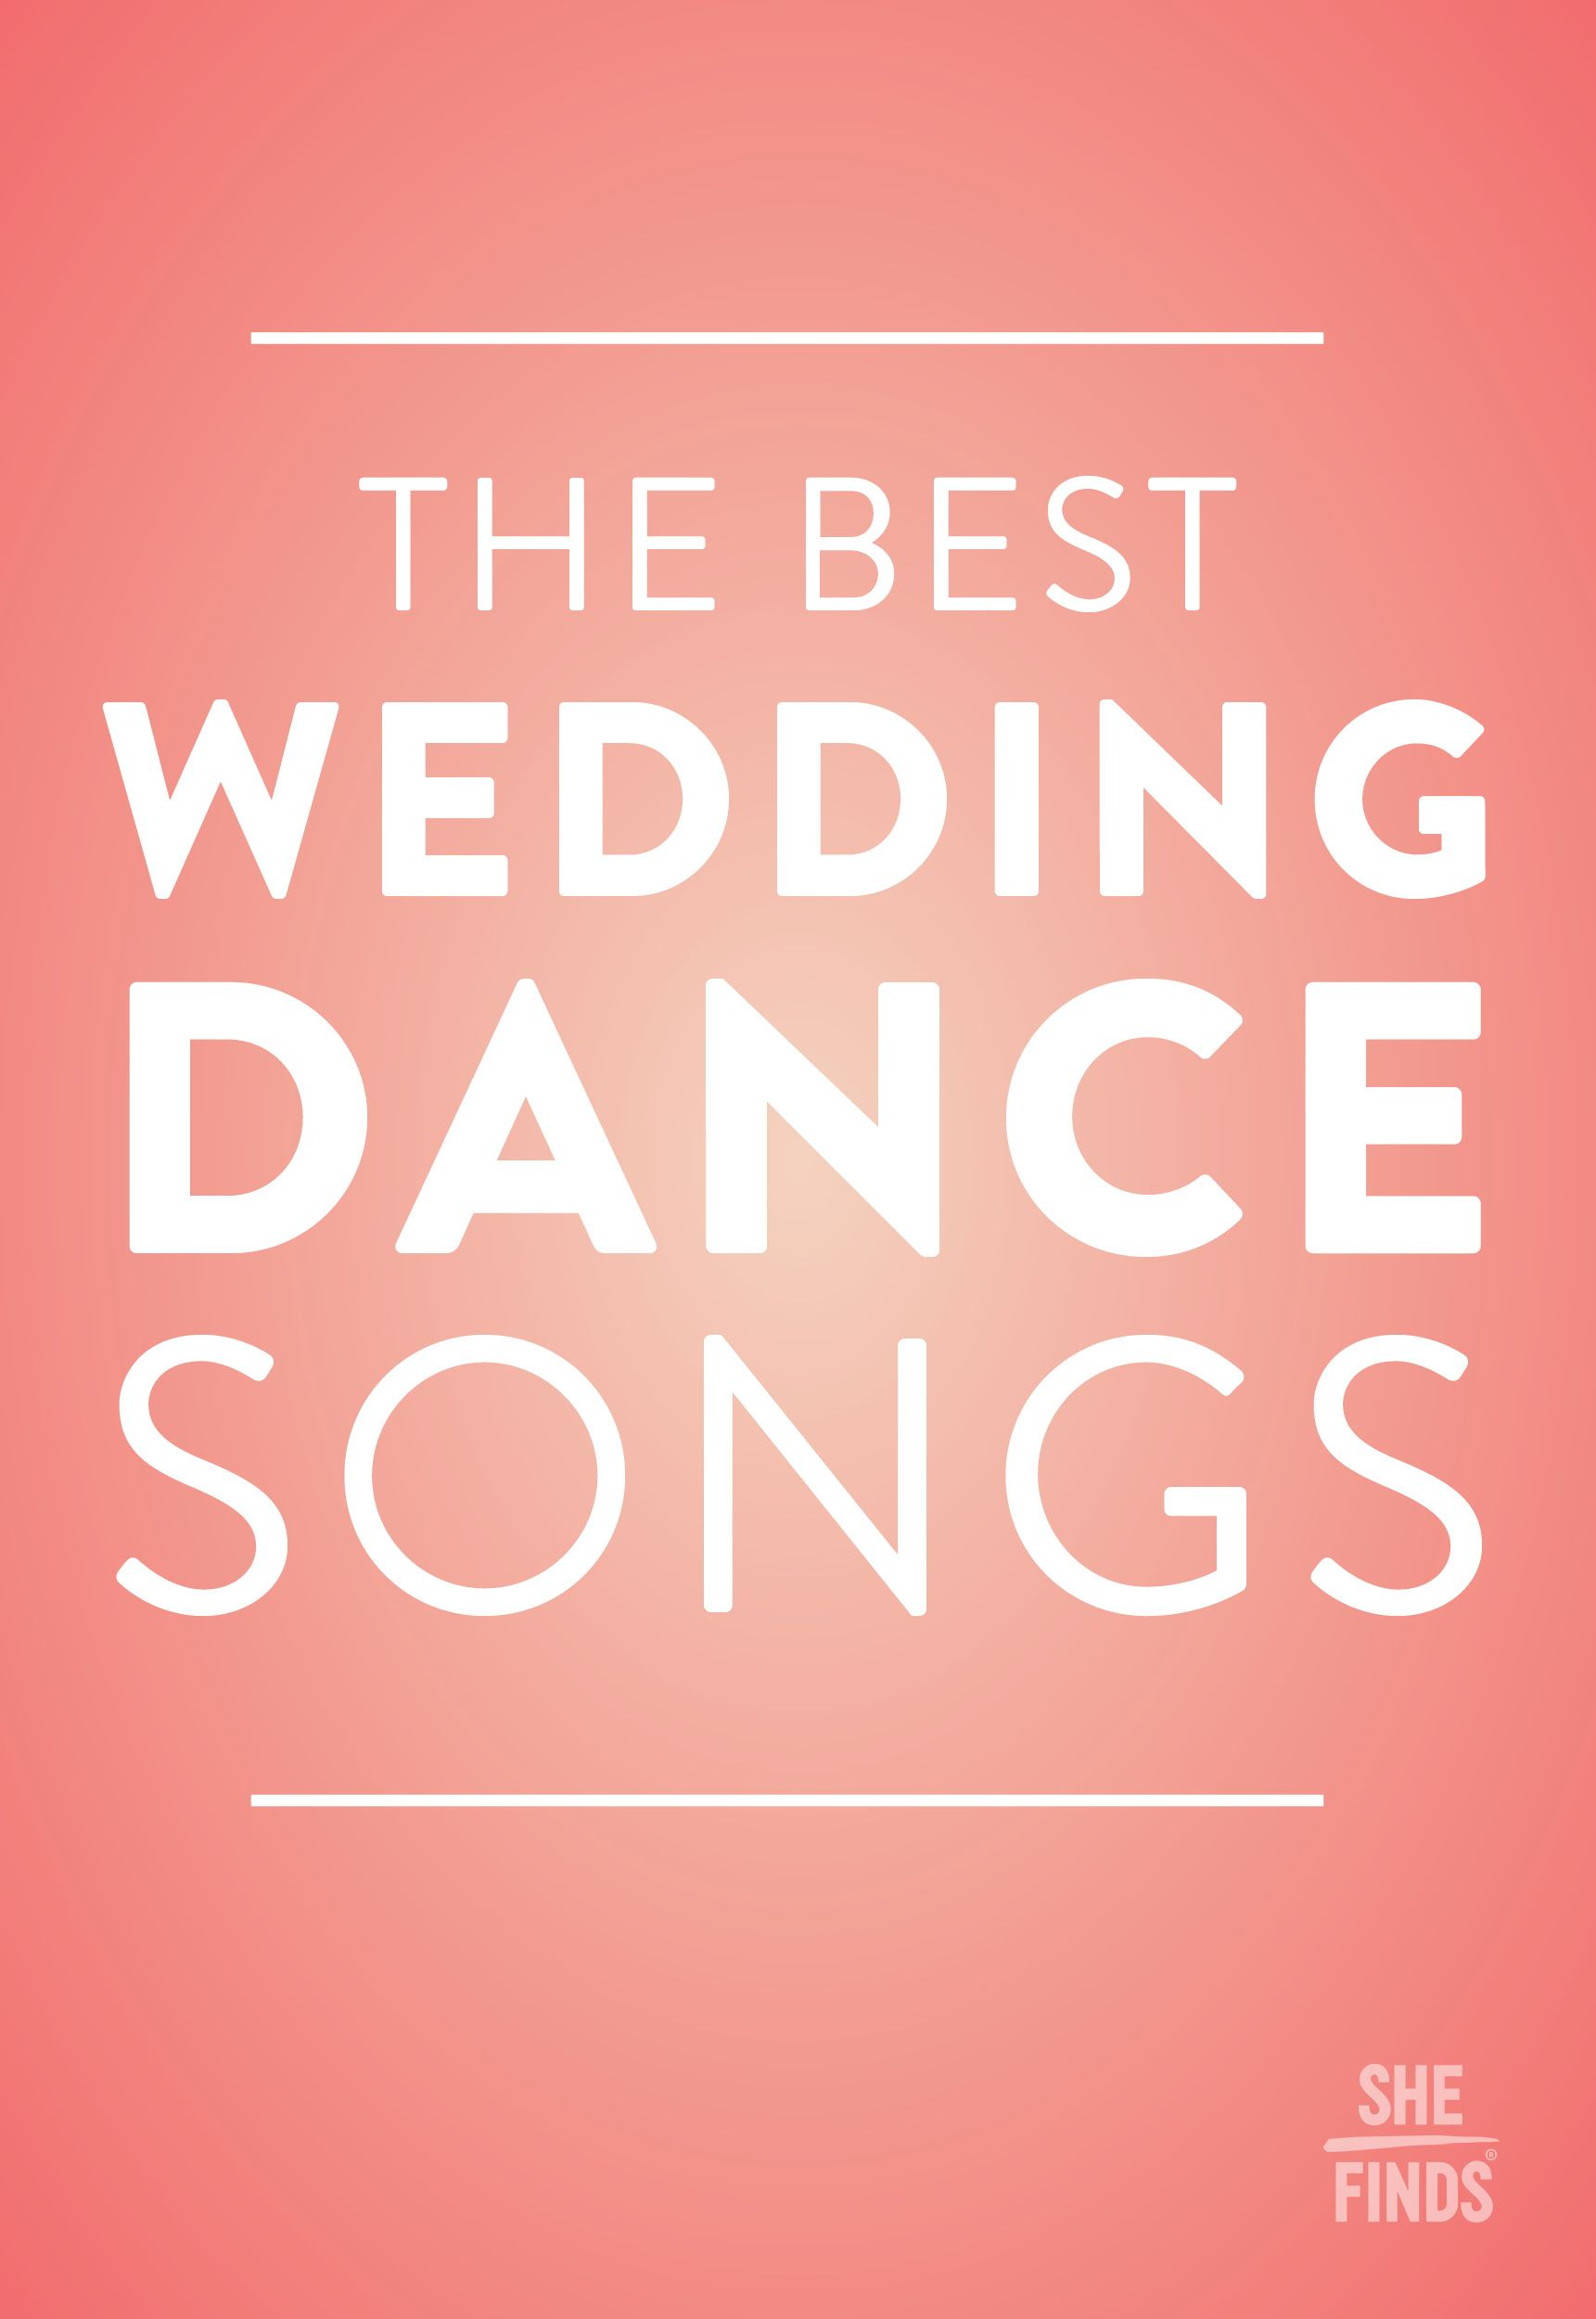 The Best Wedding DANCE Songs | Tips/Advice | Pinterest | Wedding ...